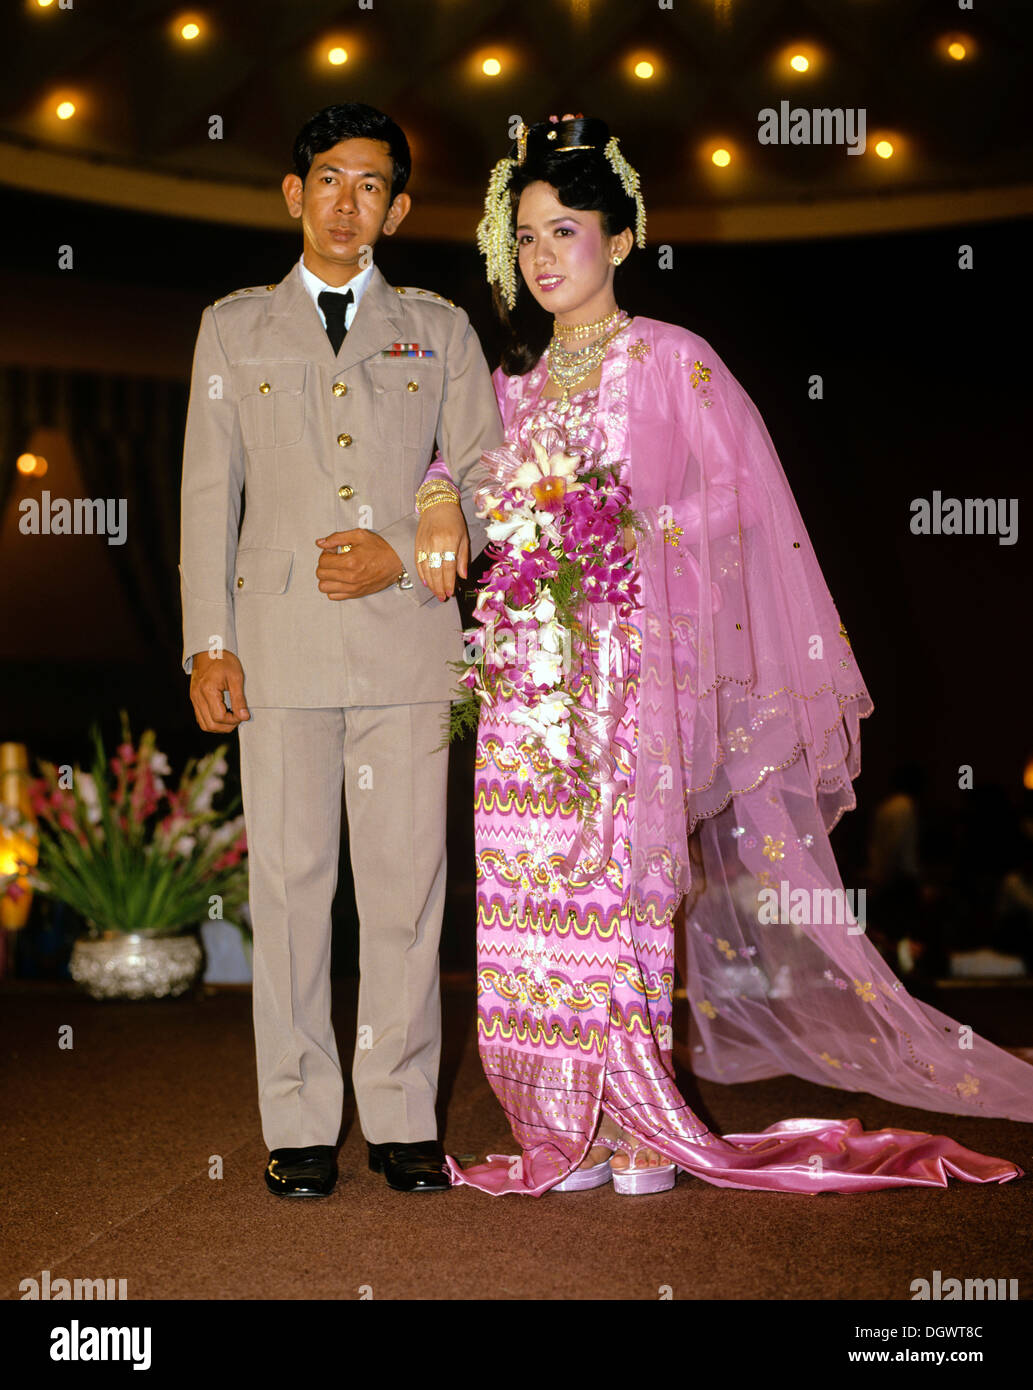 Bridal couple groom wearing a military uniform bride for Free wedding dresses for military brides